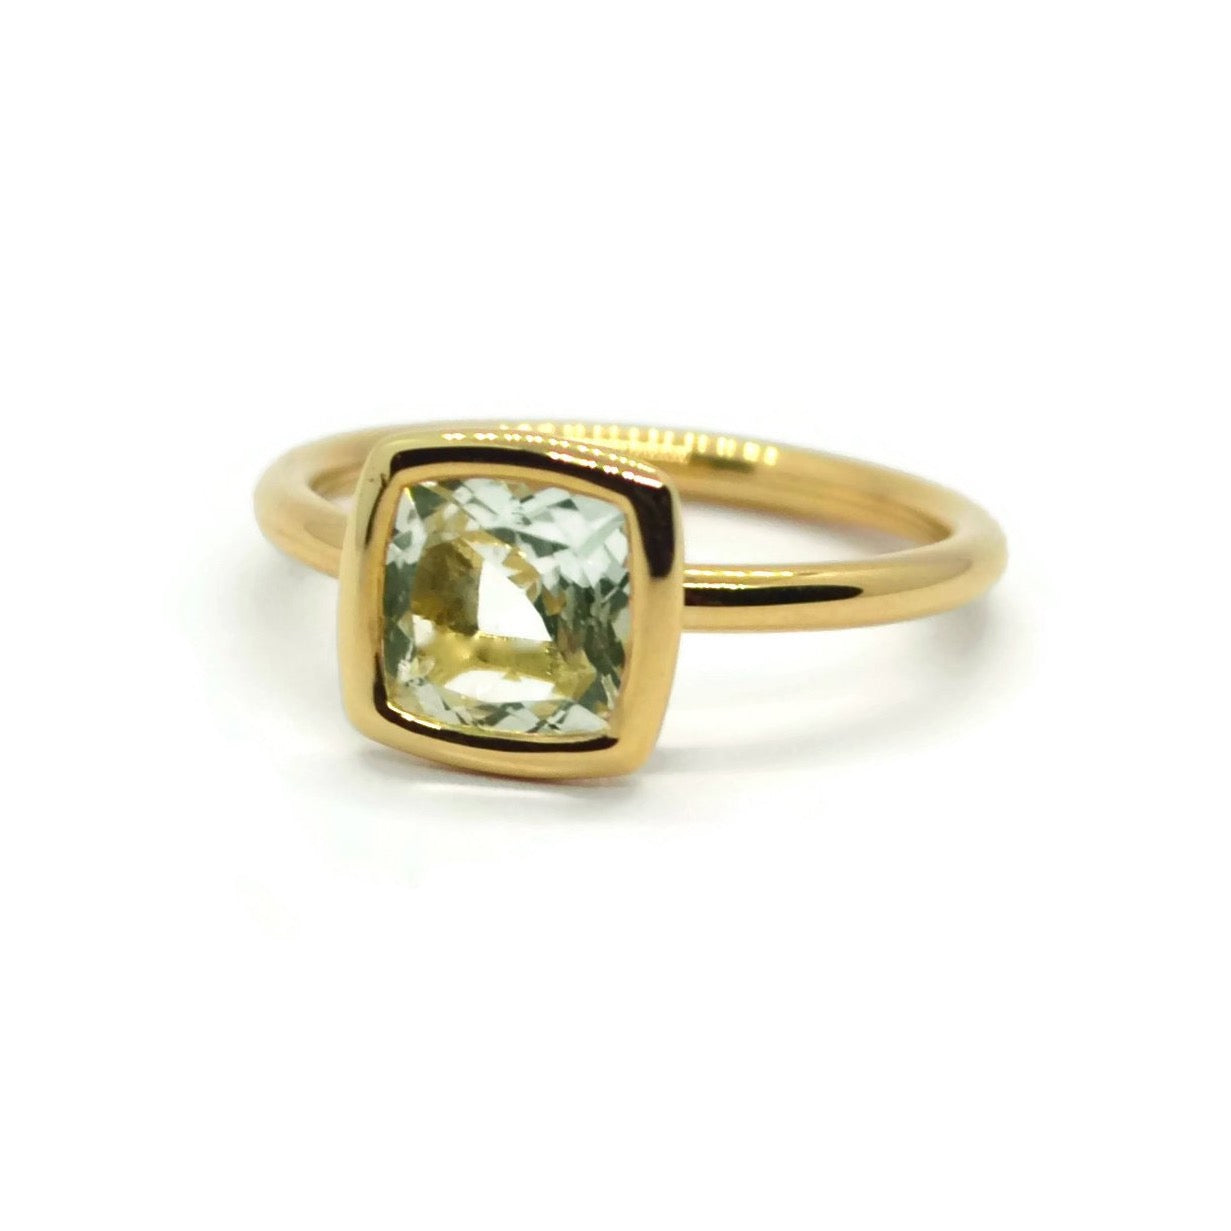 A & Furst - Gaia - Small Stackable Ring with Prasiolite, 18k Yellow Gold